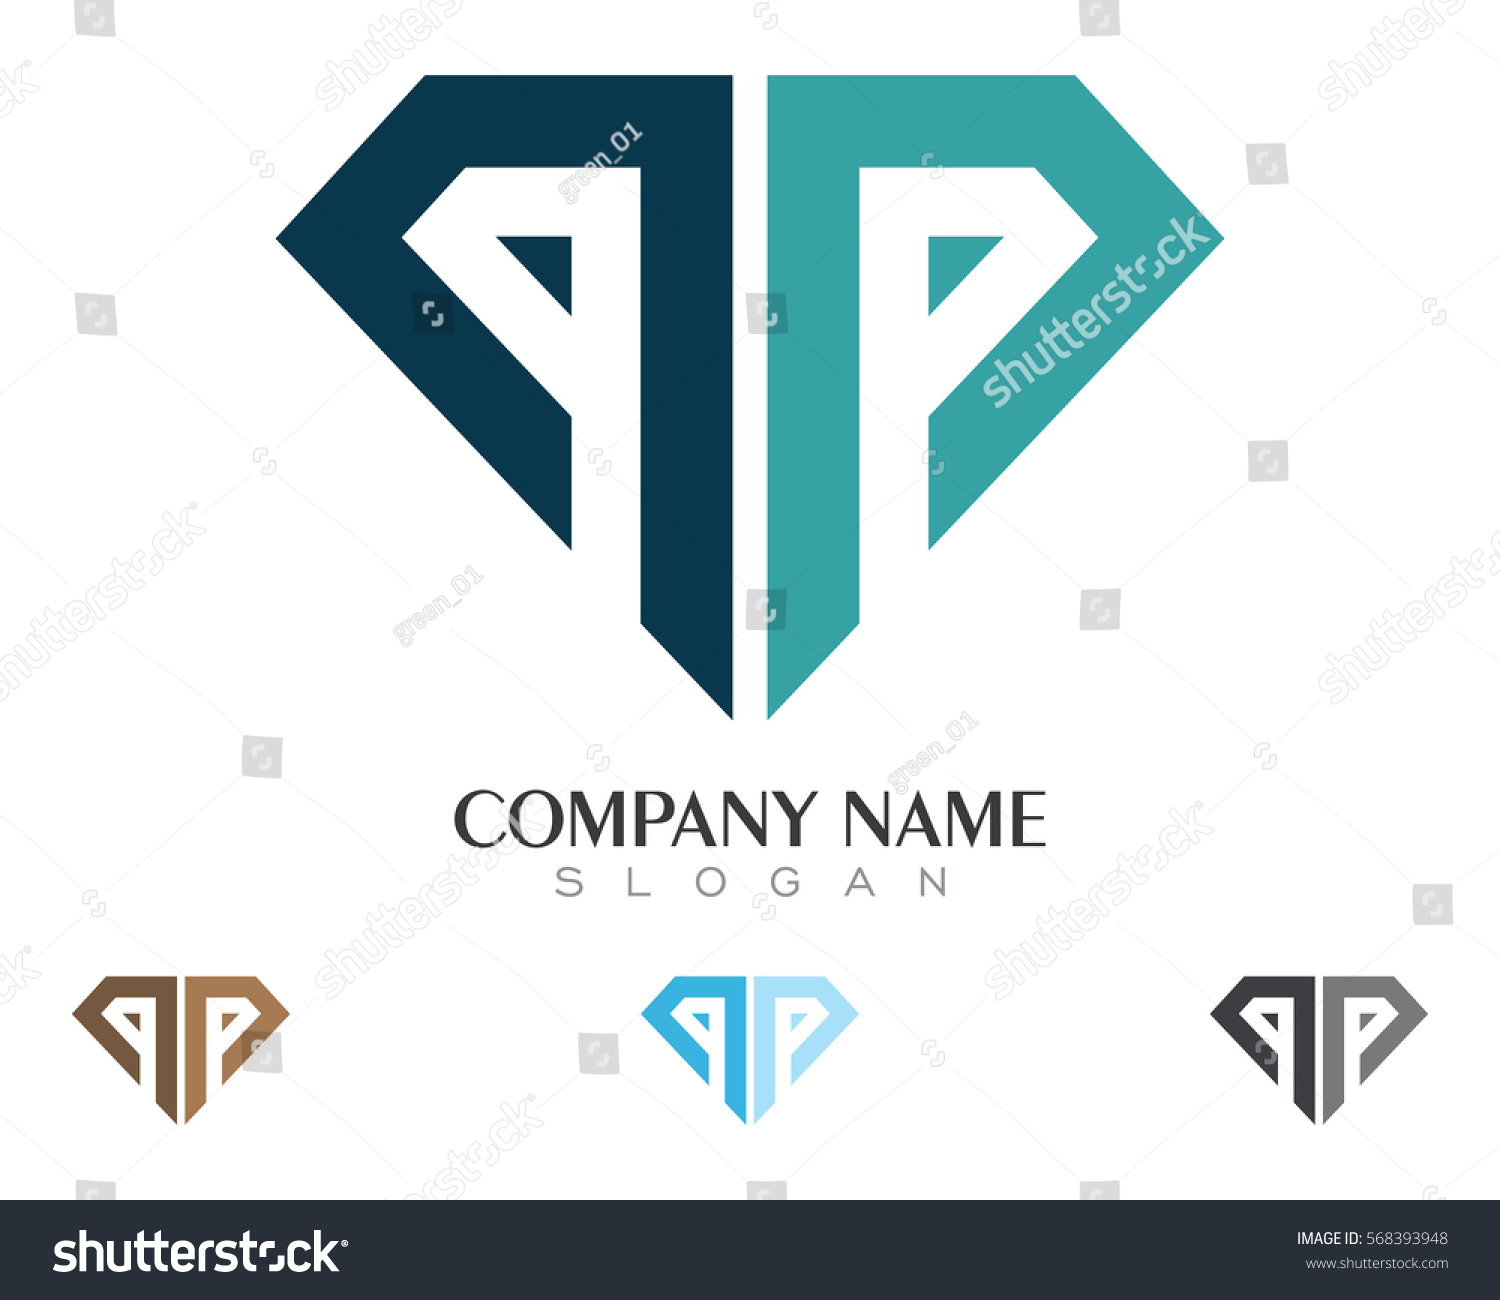 diamond logo free royalty image vector template